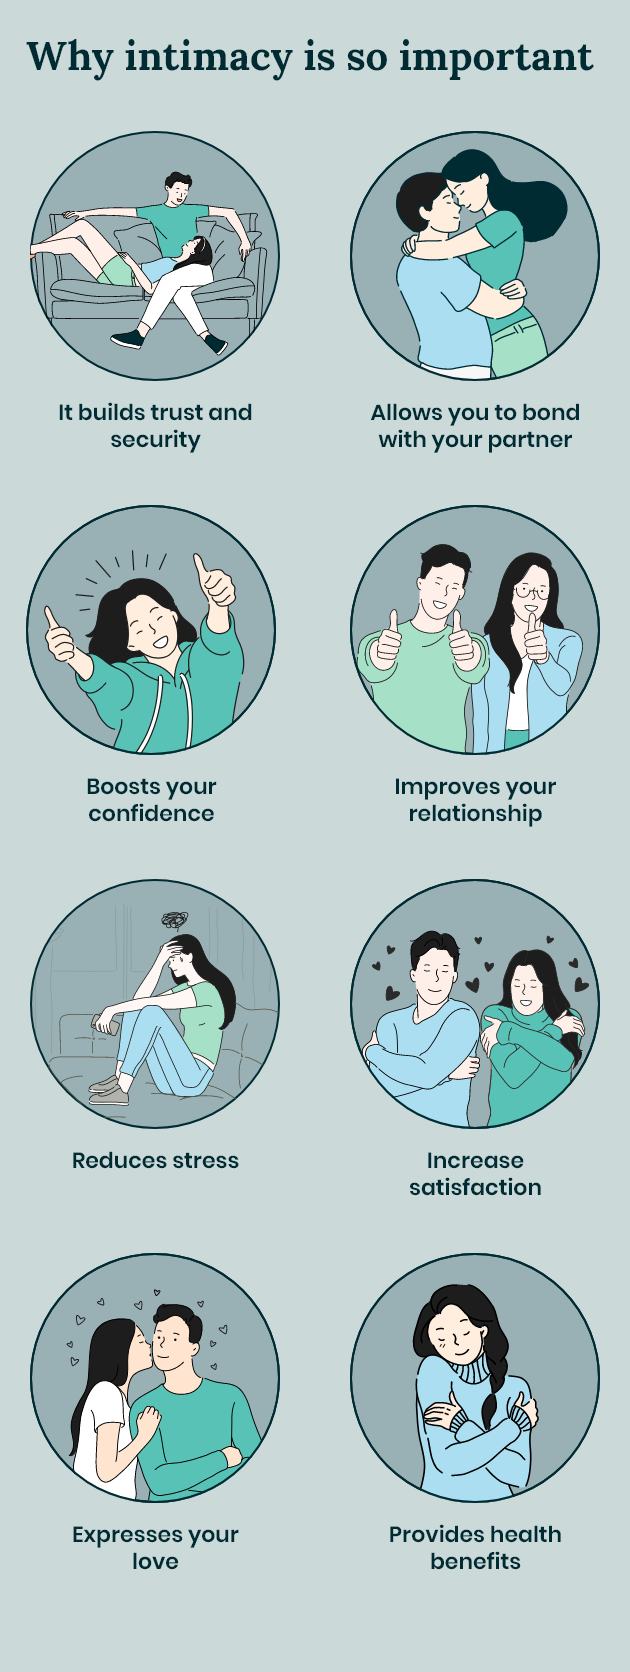 Why intimacy is so important - infographic